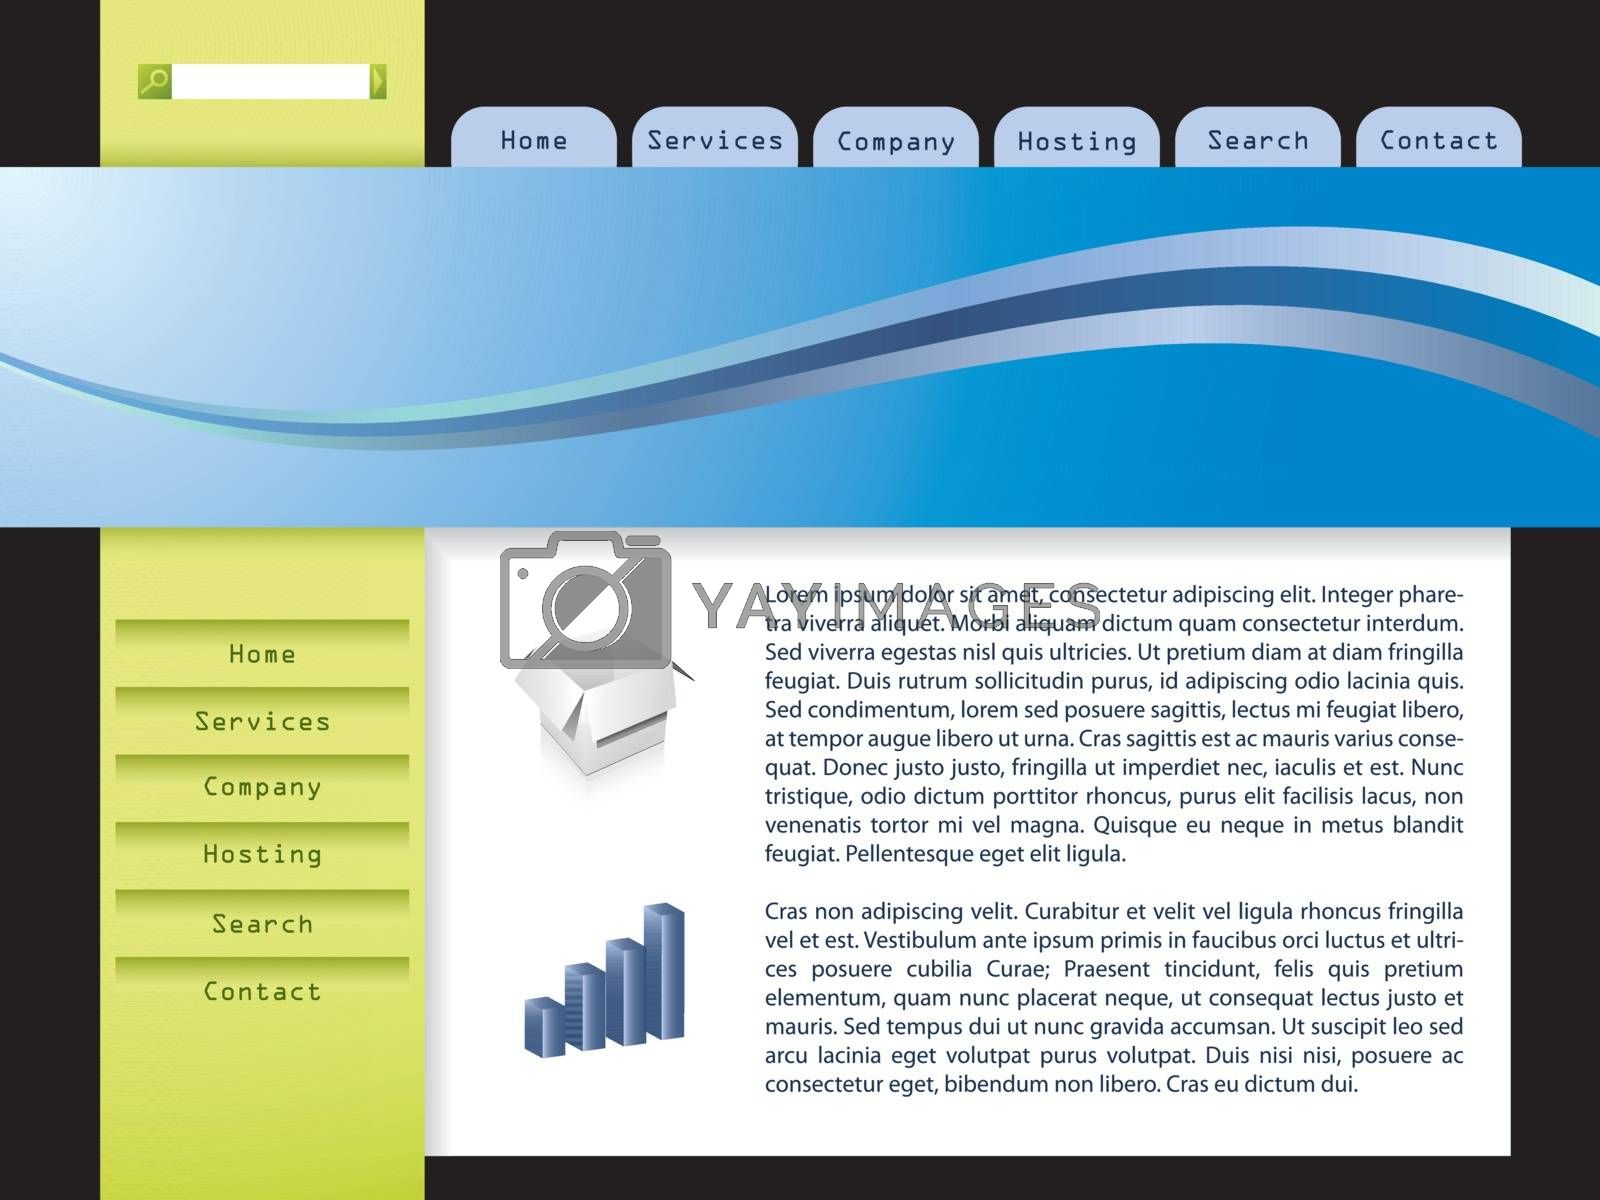 Website template design with cool wave and white space for text